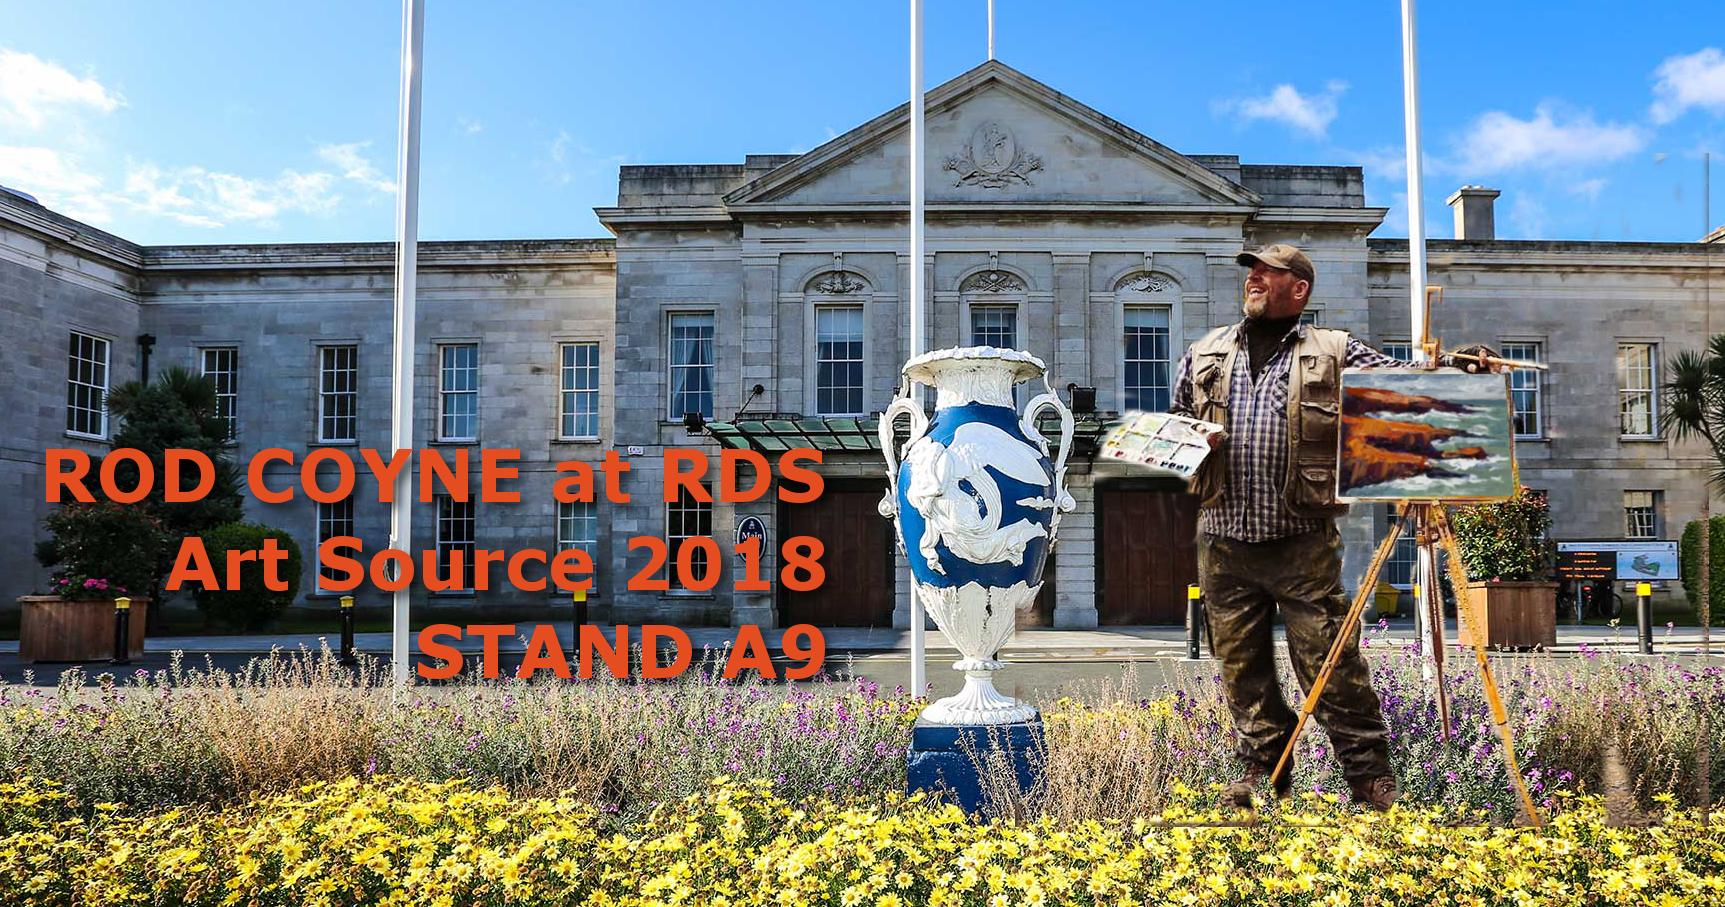 Rod Coyne at Art Souce photomontage of Rod infront of RDS building